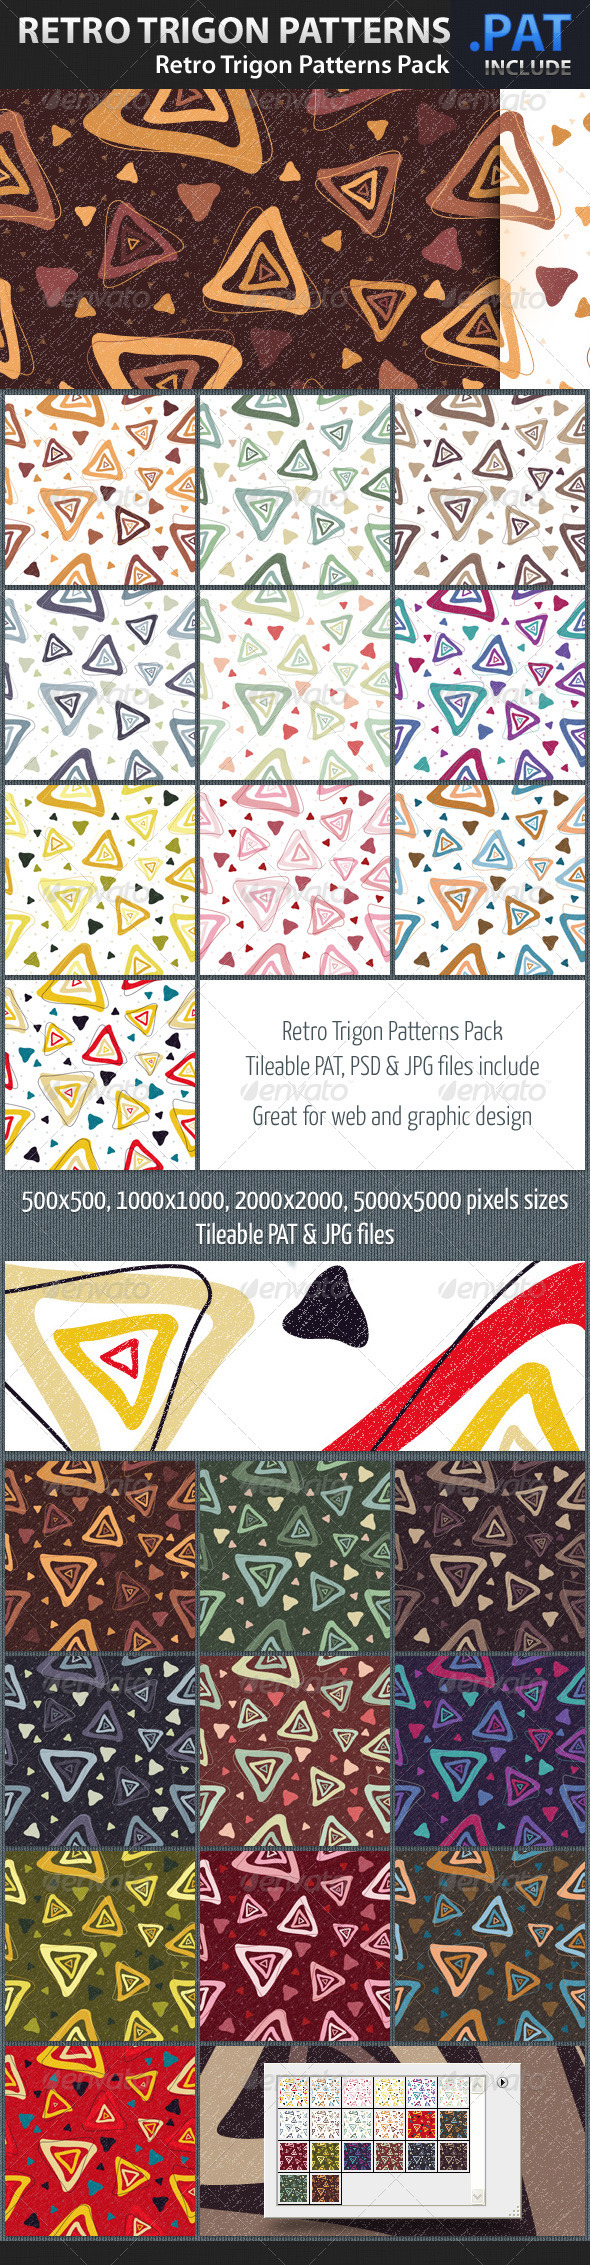 Graphic River Retro Trigon Patterns Pack Textures -  Art 1402796